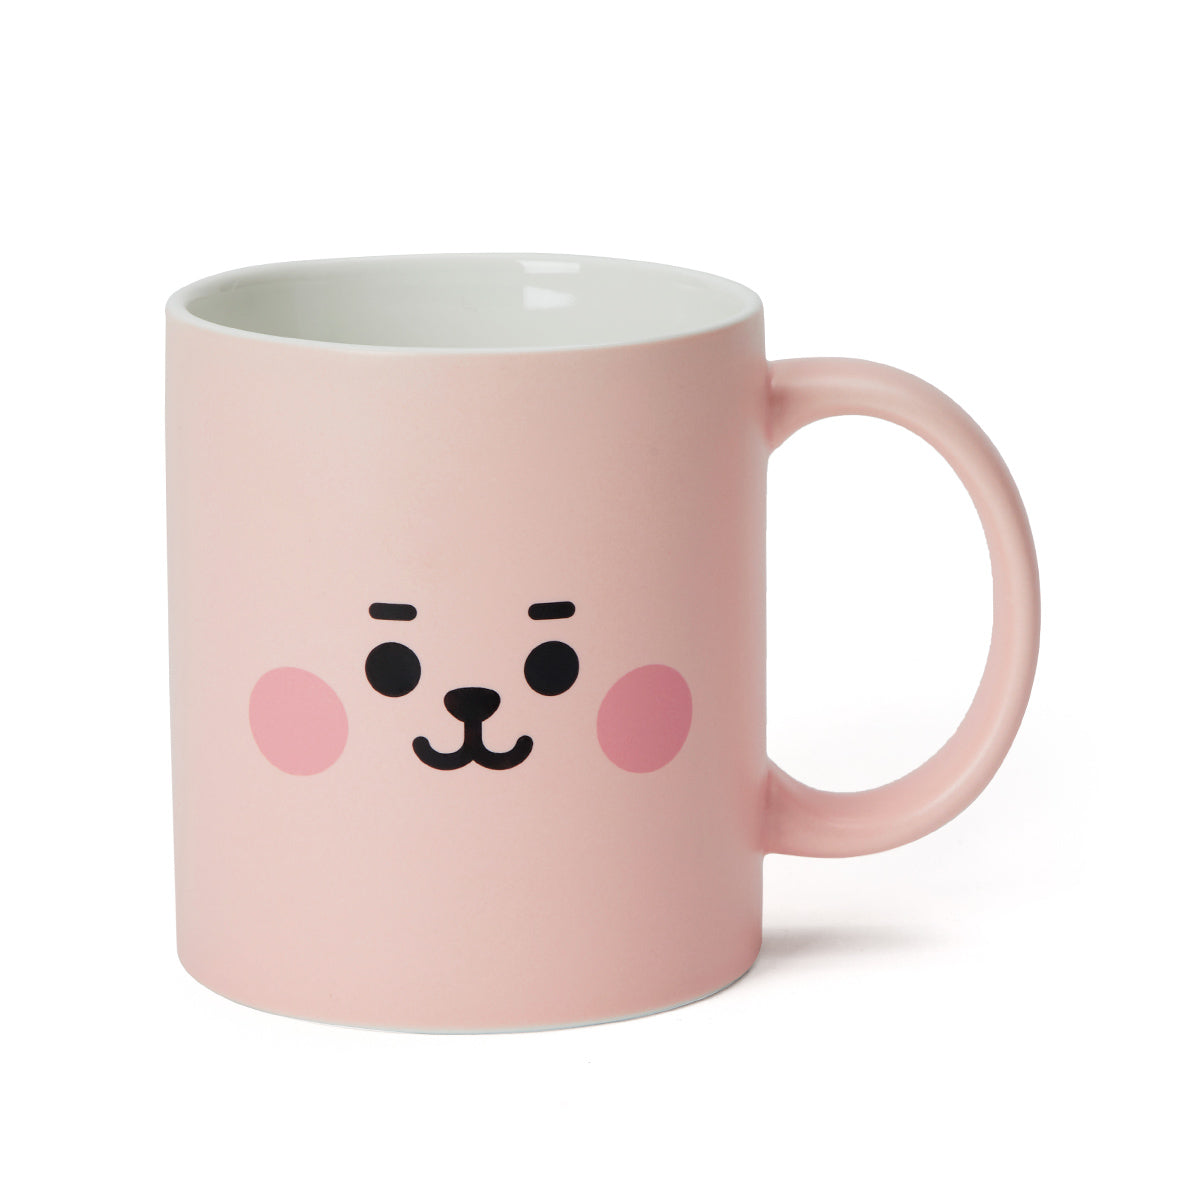 BT21 COOKY 20 BABY CERAMIC MUG